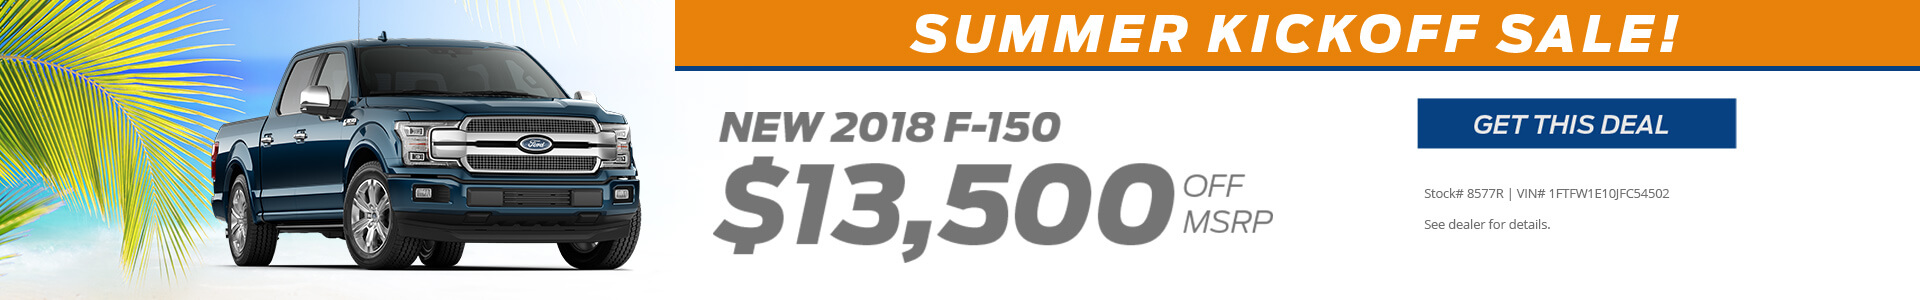 Ford F150 $13500 off MSRP